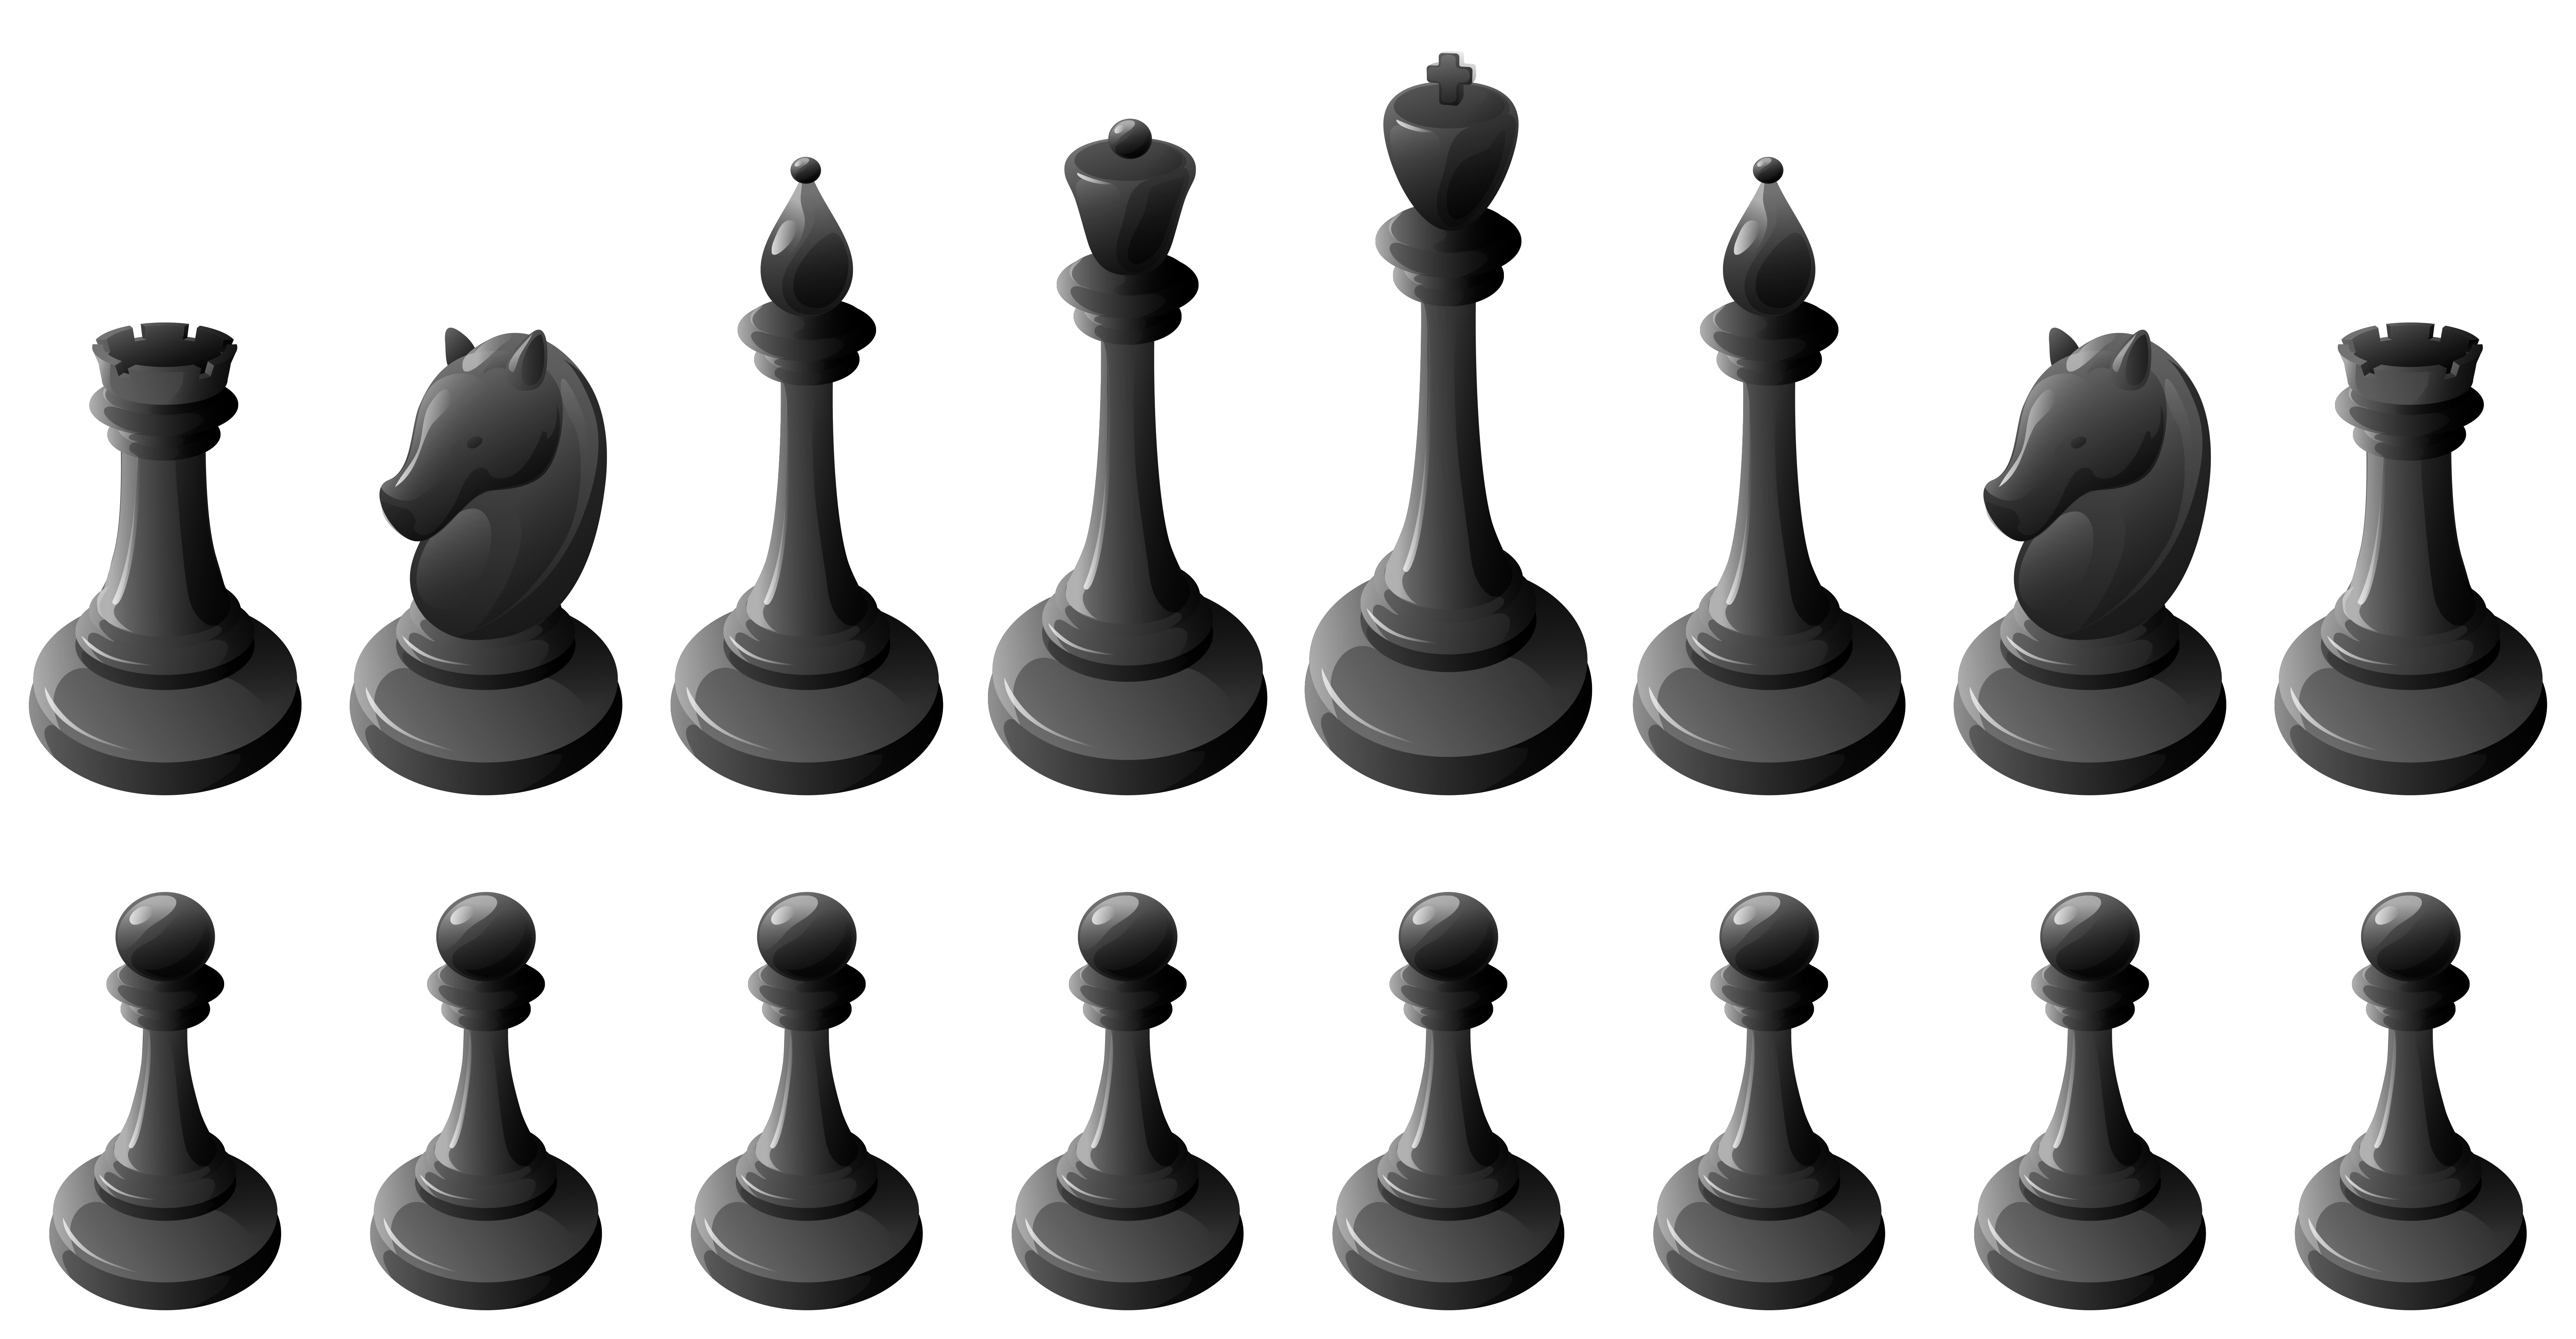 Chess clipart chess coin. Black pieces png best